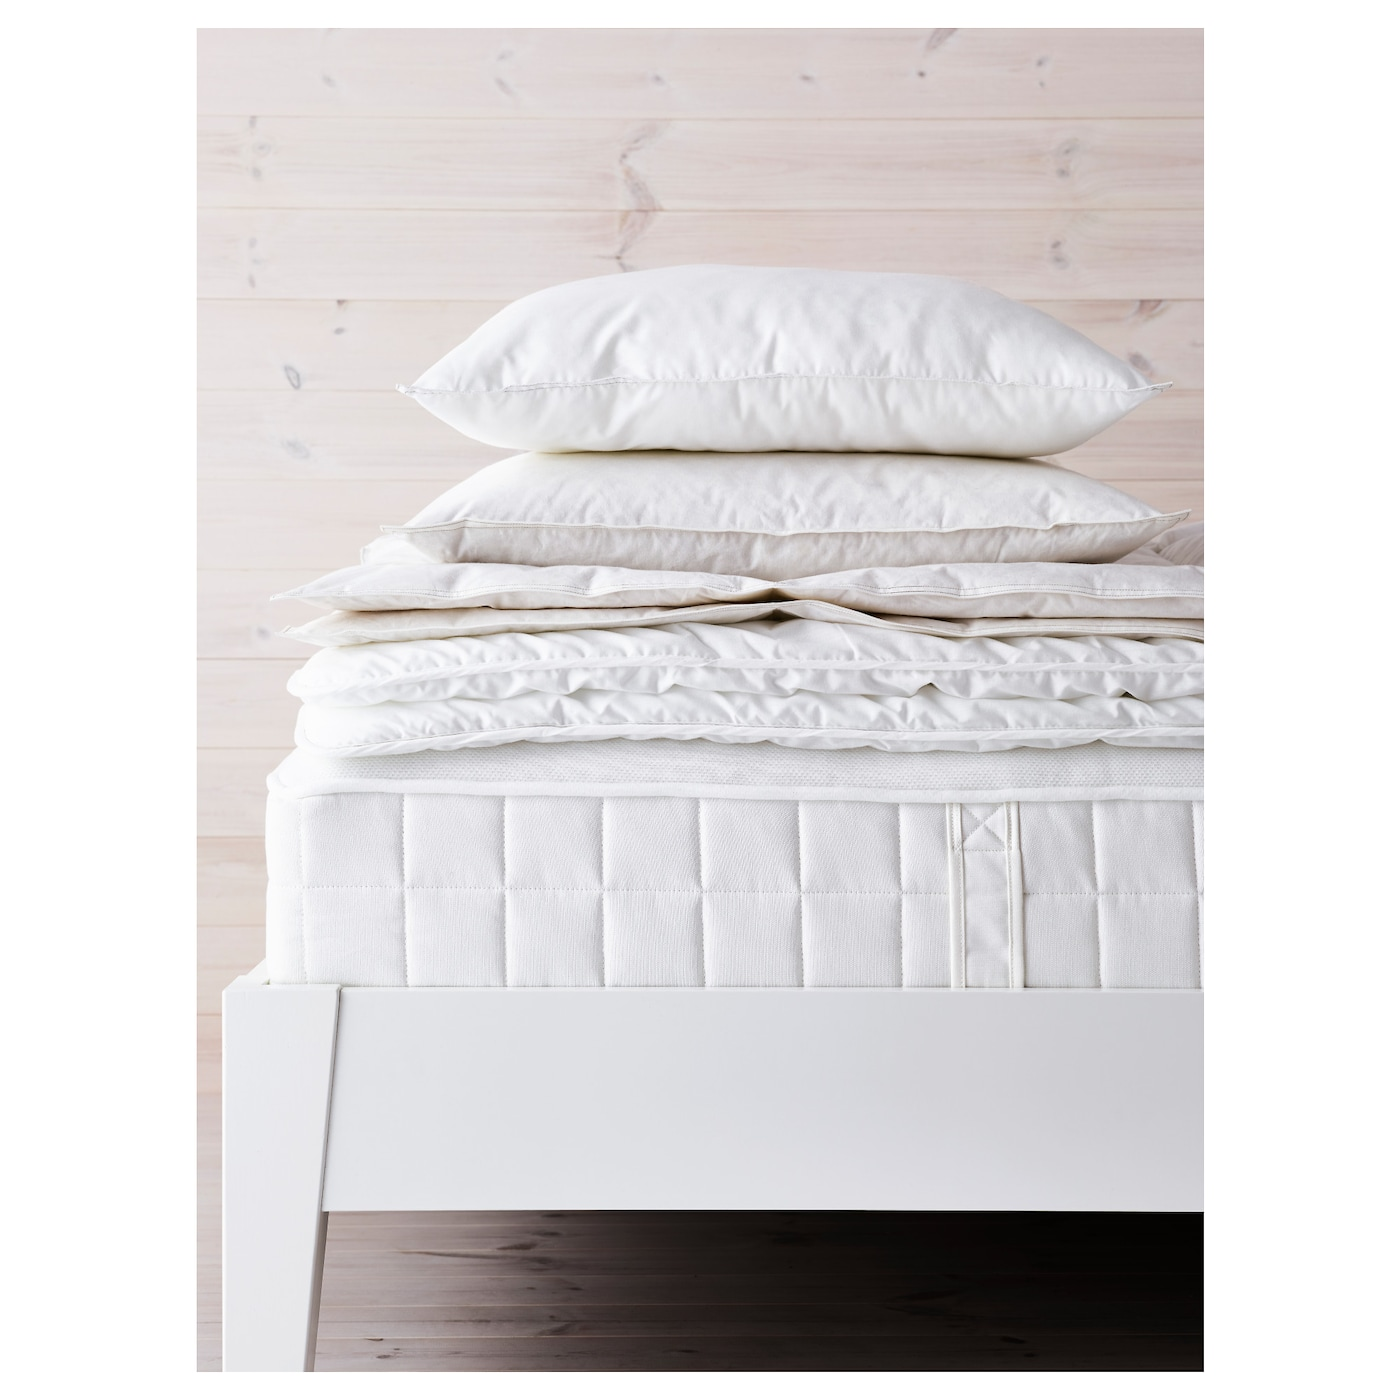 hyllestad matelas ressorts ensach s ferme blanc 90 x 200 cm ikea. Black Bedroom Furniture Sets. Home Design Ideas